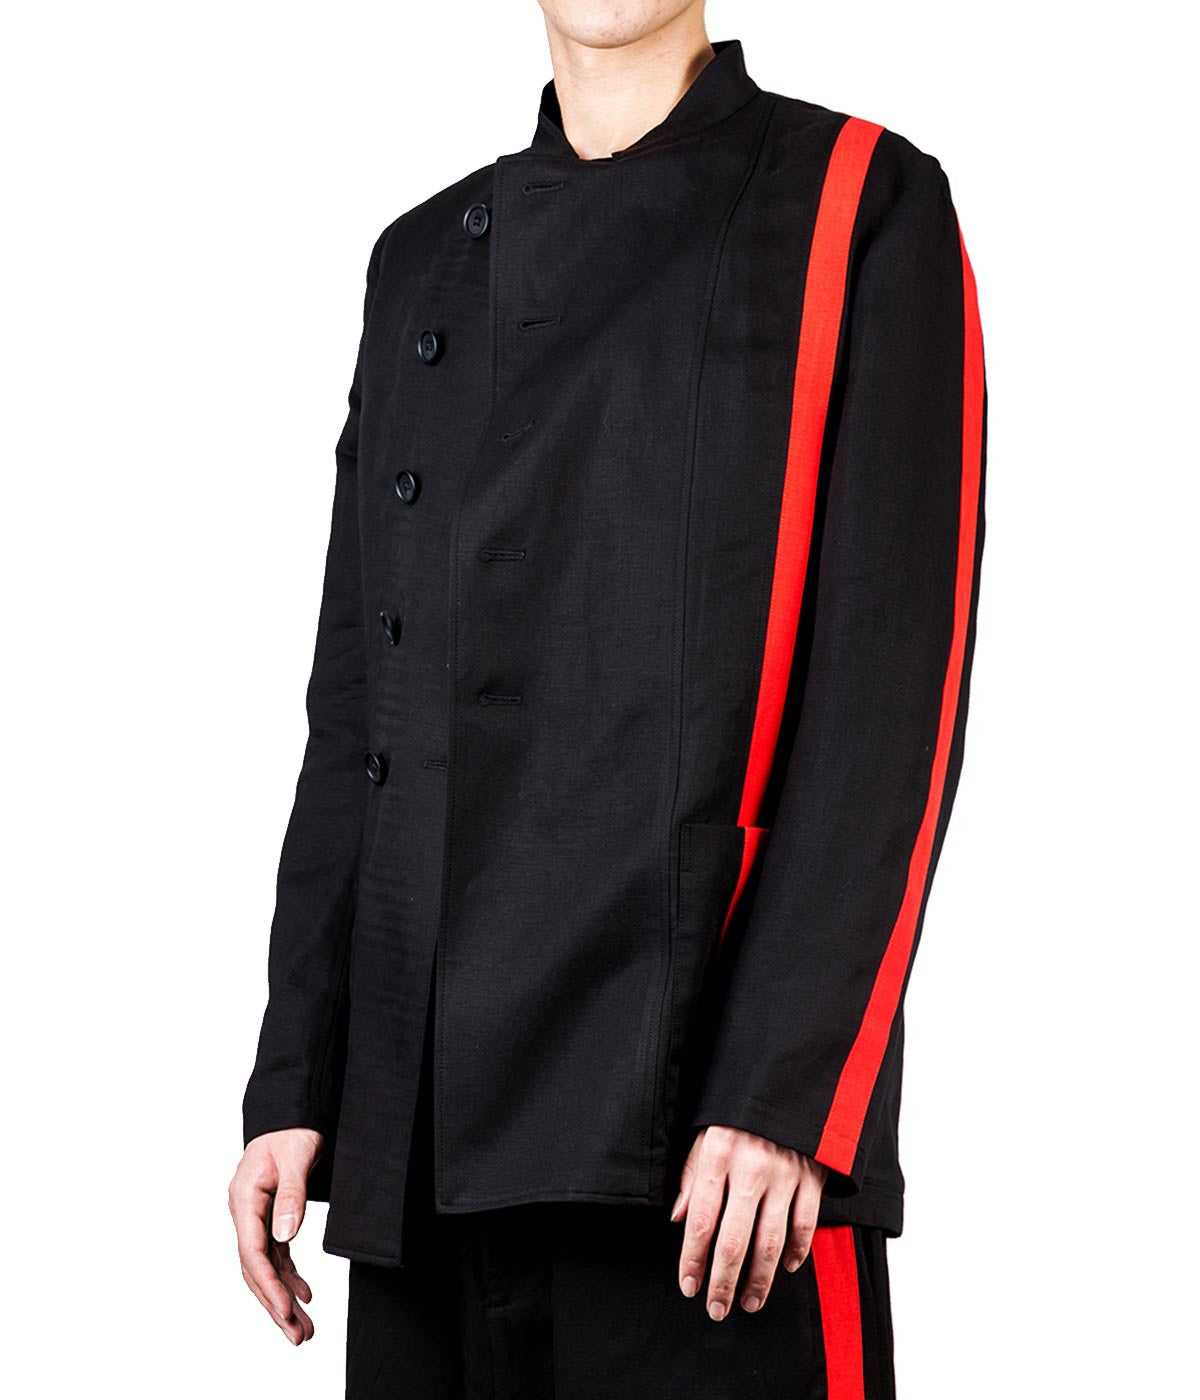 Black & Red Panelled Blazer